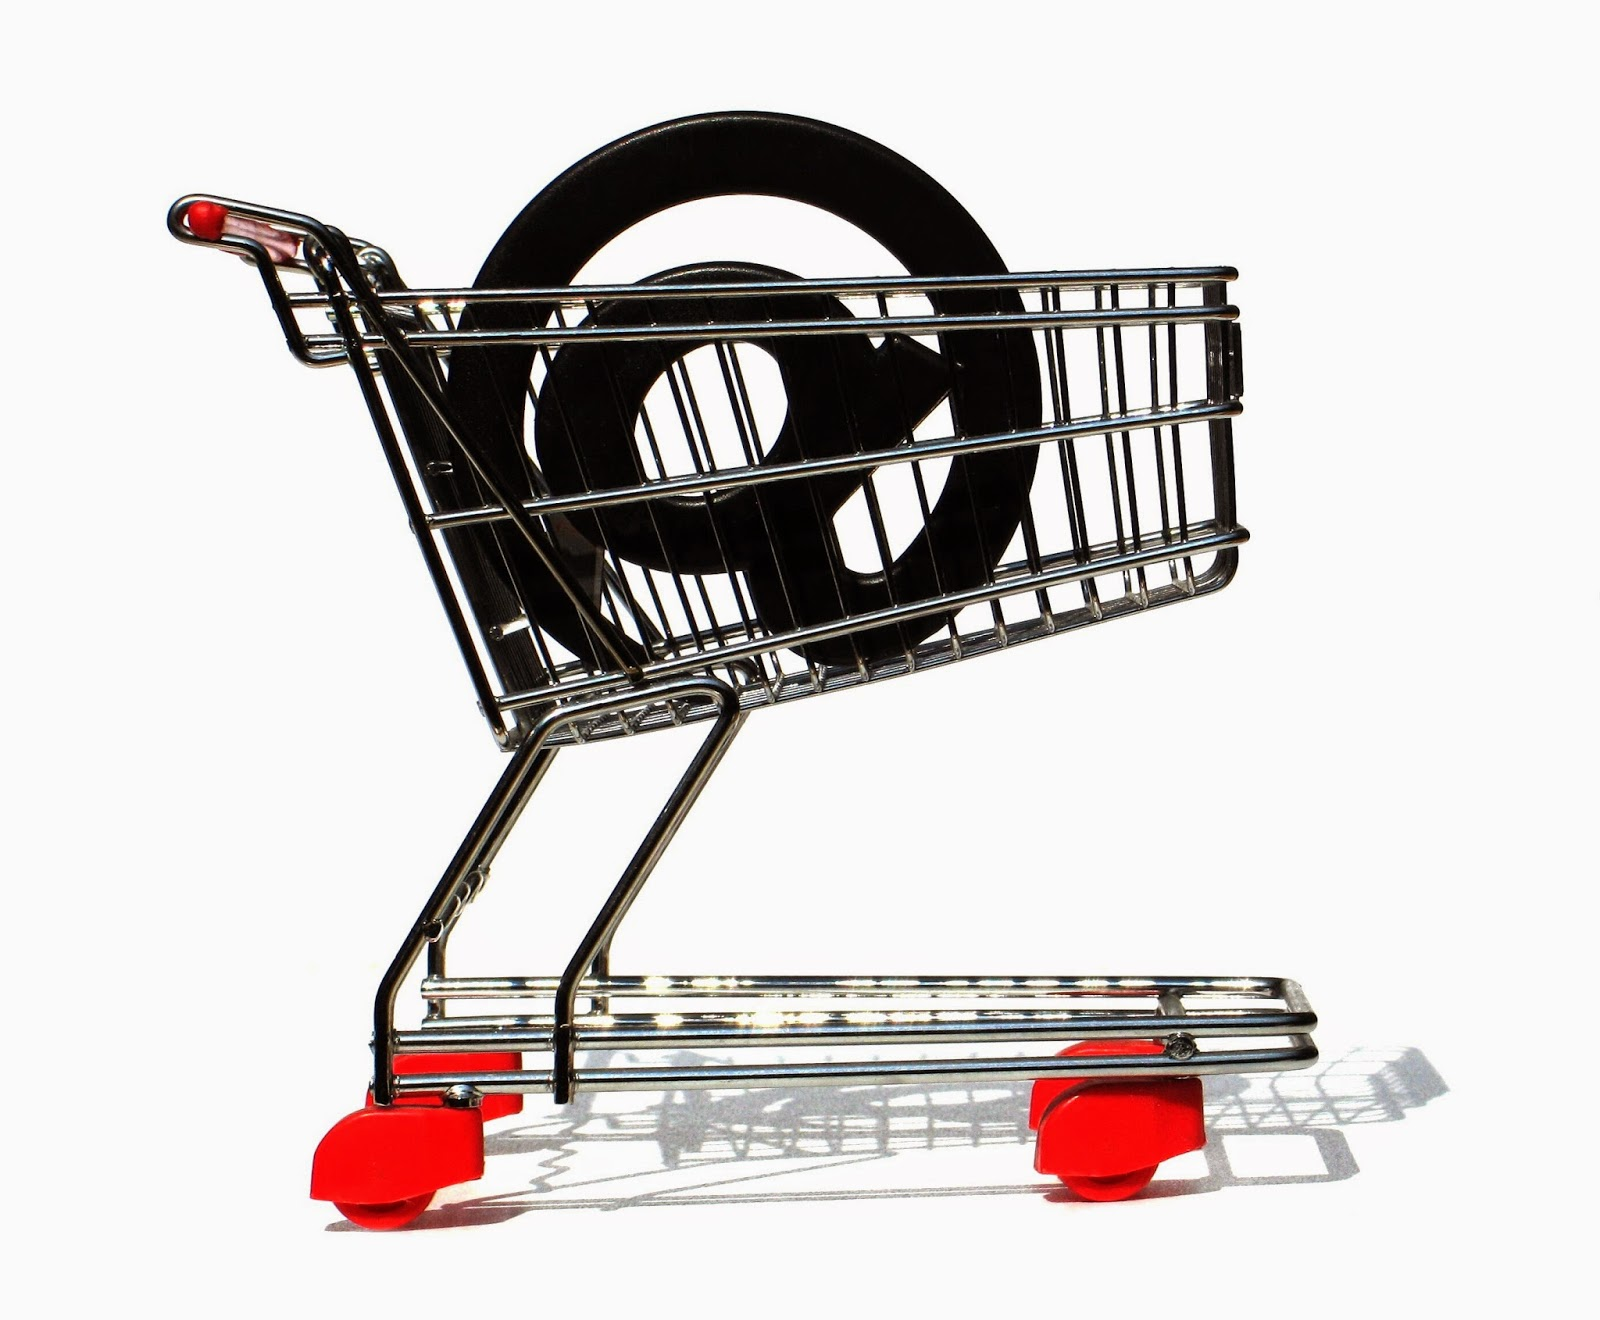 The Online Store, a Legitimate Home Based Job